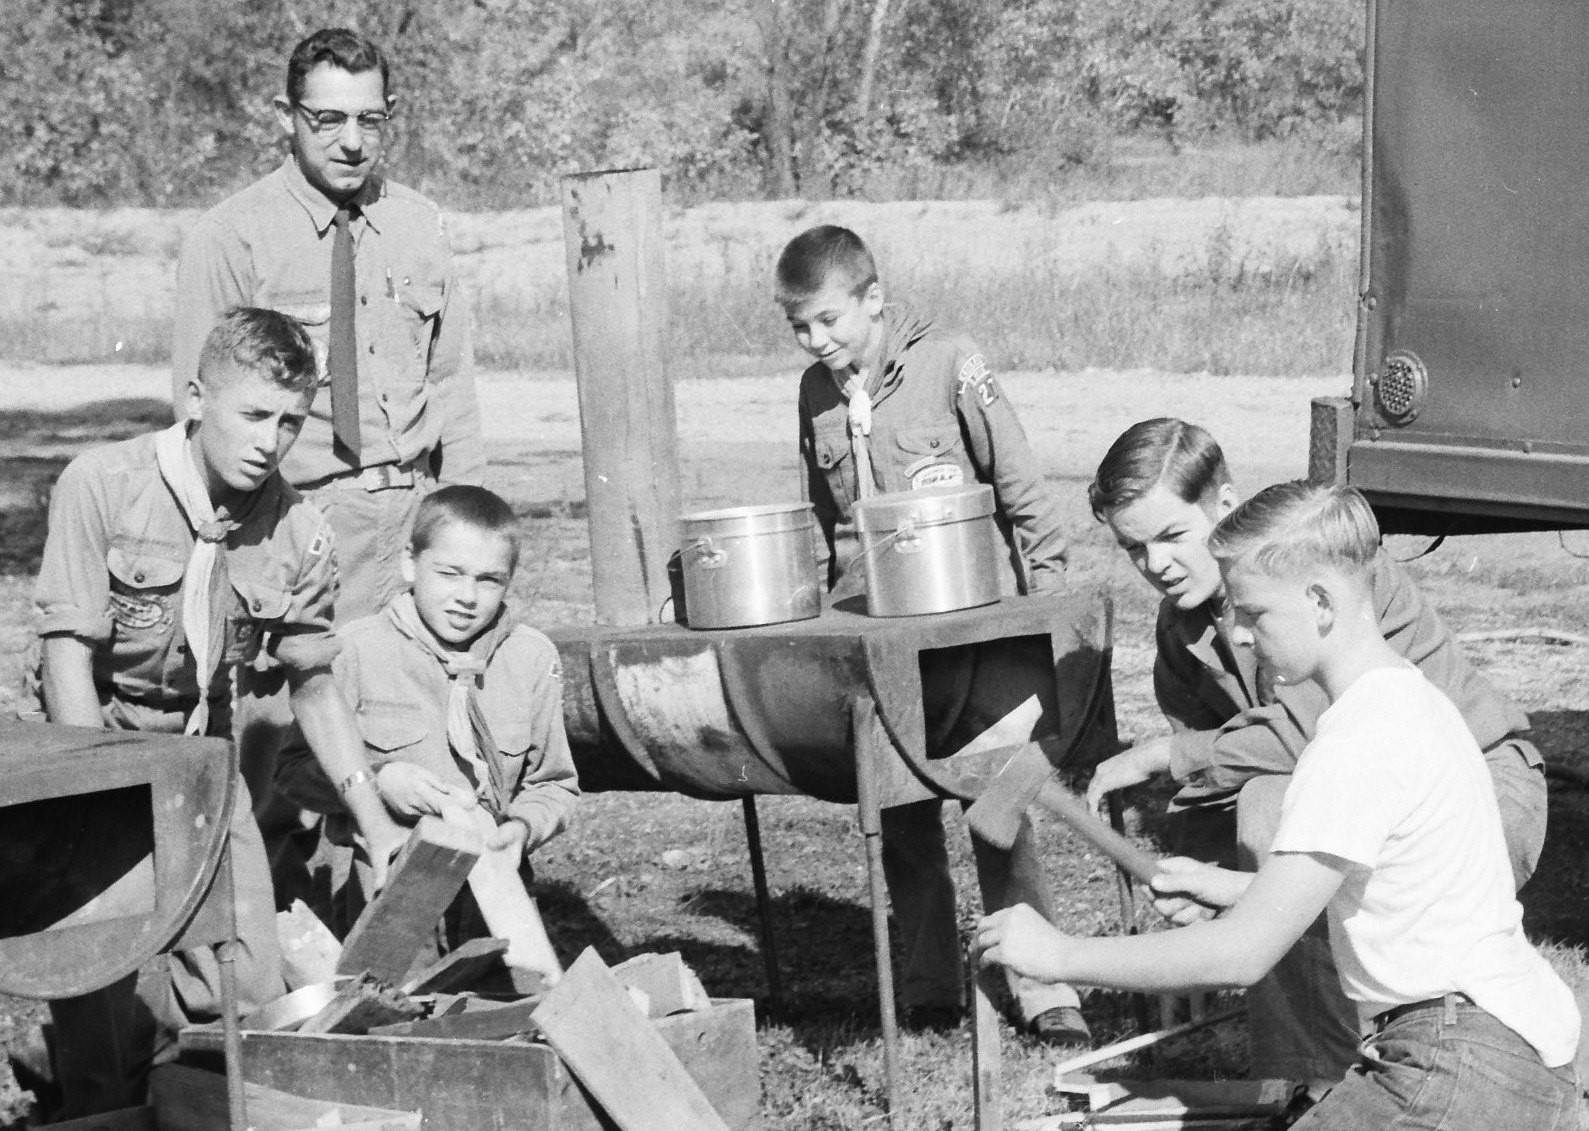 November 1960 - Camporees Field Days – Boy Scout Troop 27 sponsored by St. Mary's activities this fall. Left to right the group includes Bill Niesen, assistant leader Howard Veldman, Dan Nagan, Dennis Kern, Bob Steffens and Roger Mets.